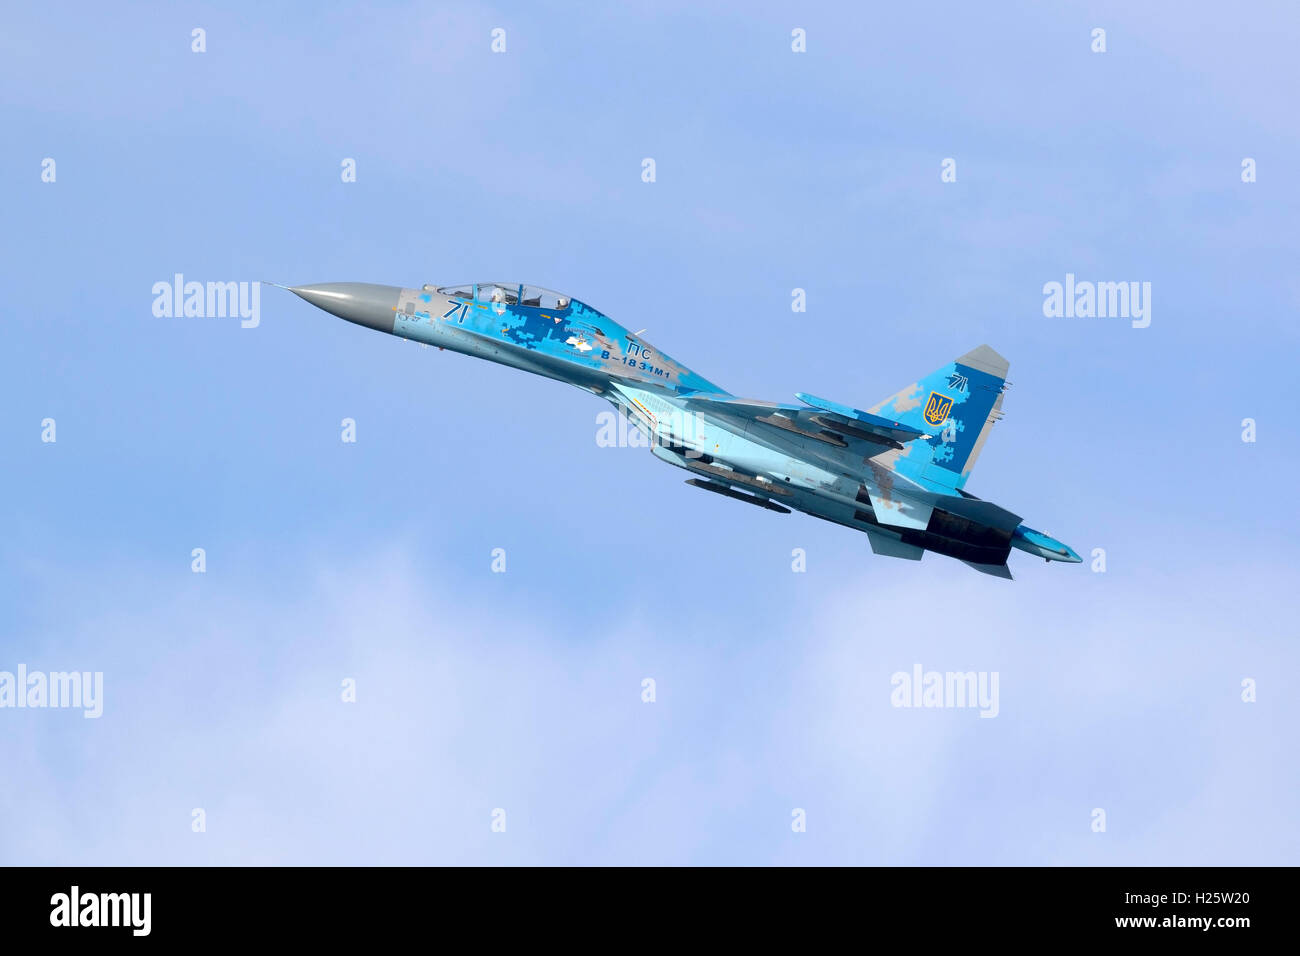 Ukrainian Air Force Sukhoi Su-27UB [71] making a rehearsal flight over the east coast for the upcoming airshow in - Stock Image